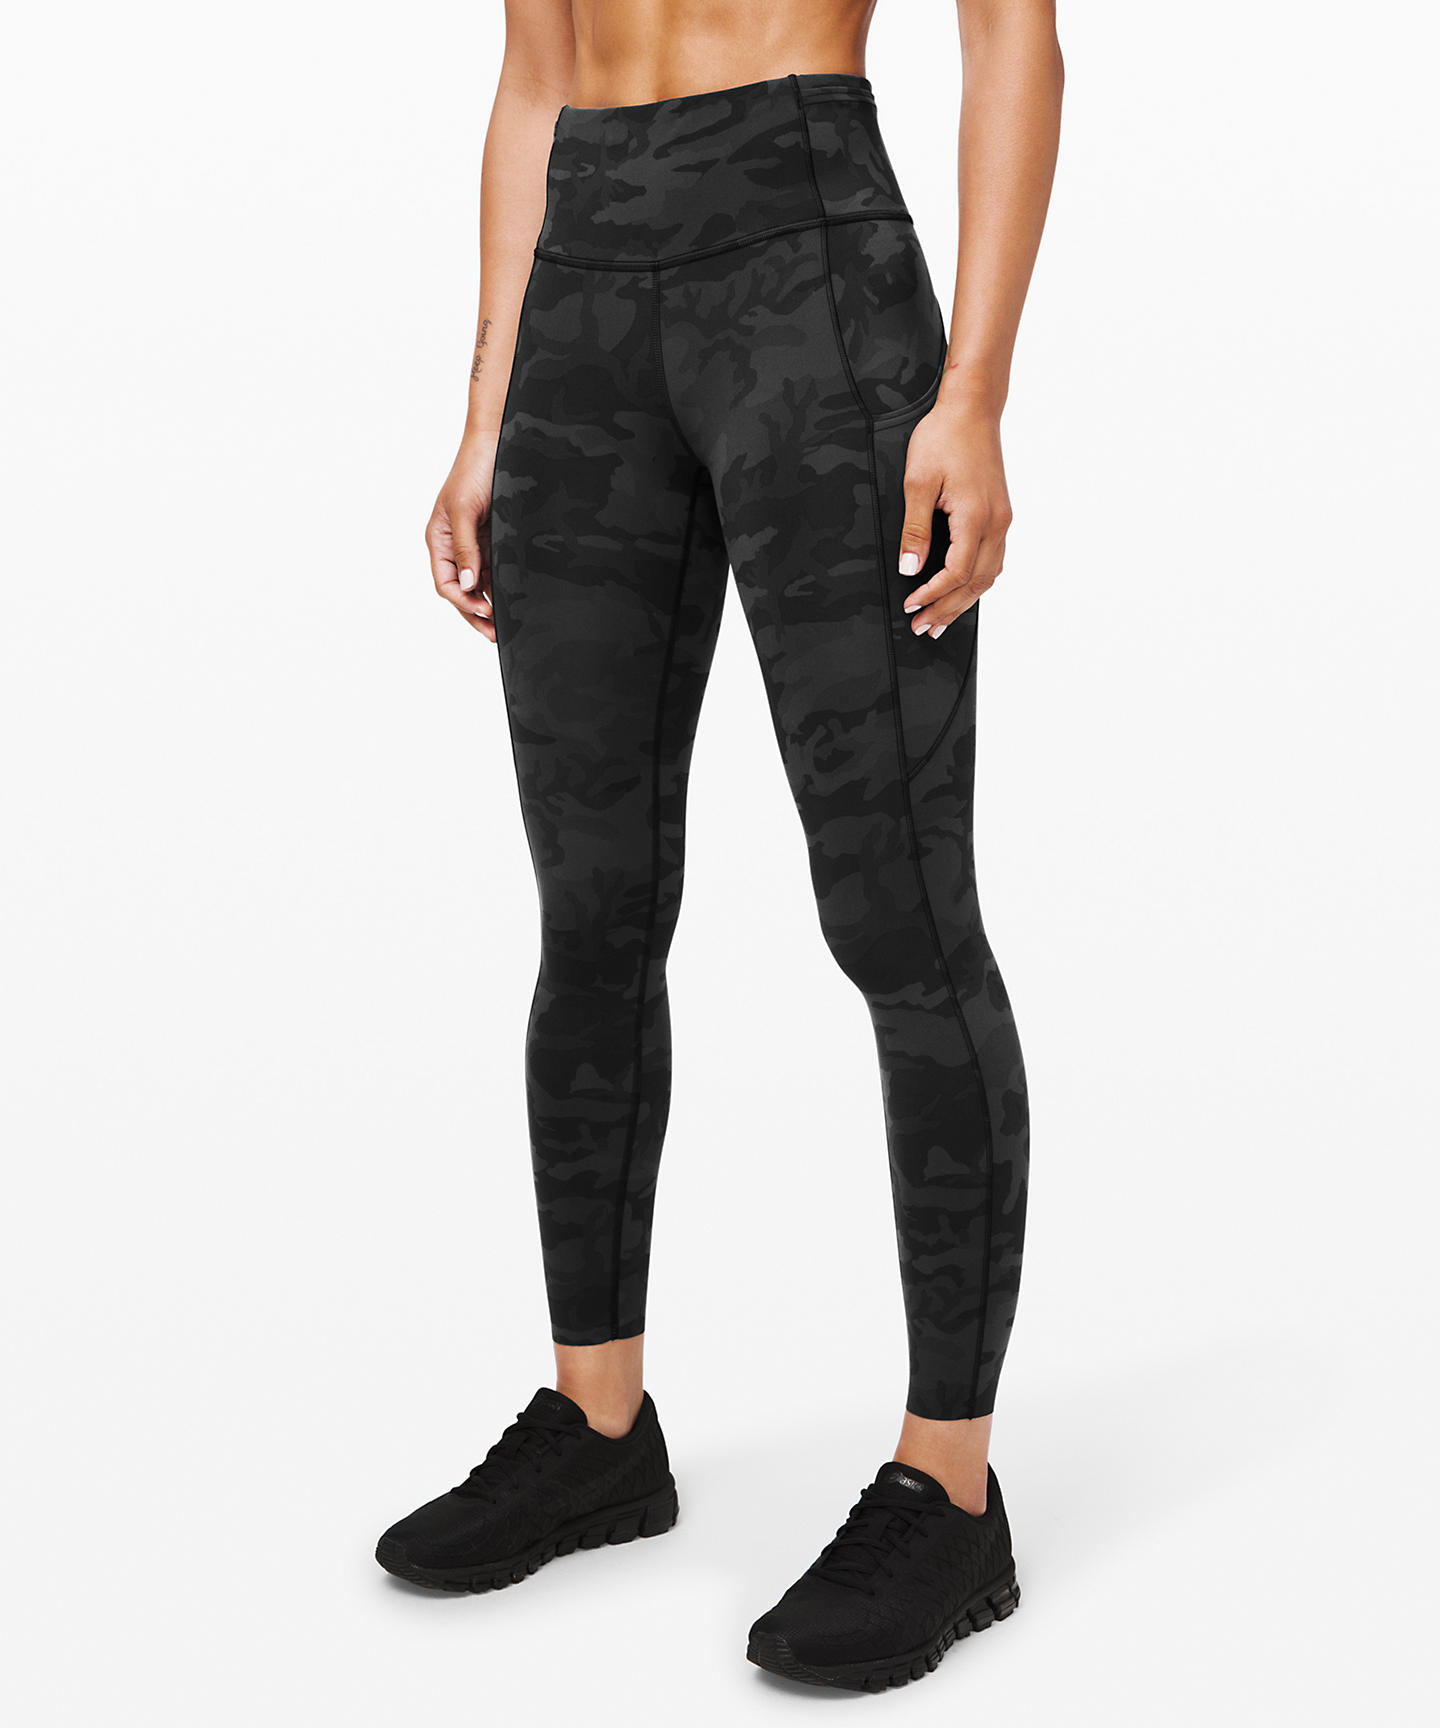 Lululemon fast and free Nulux tight review